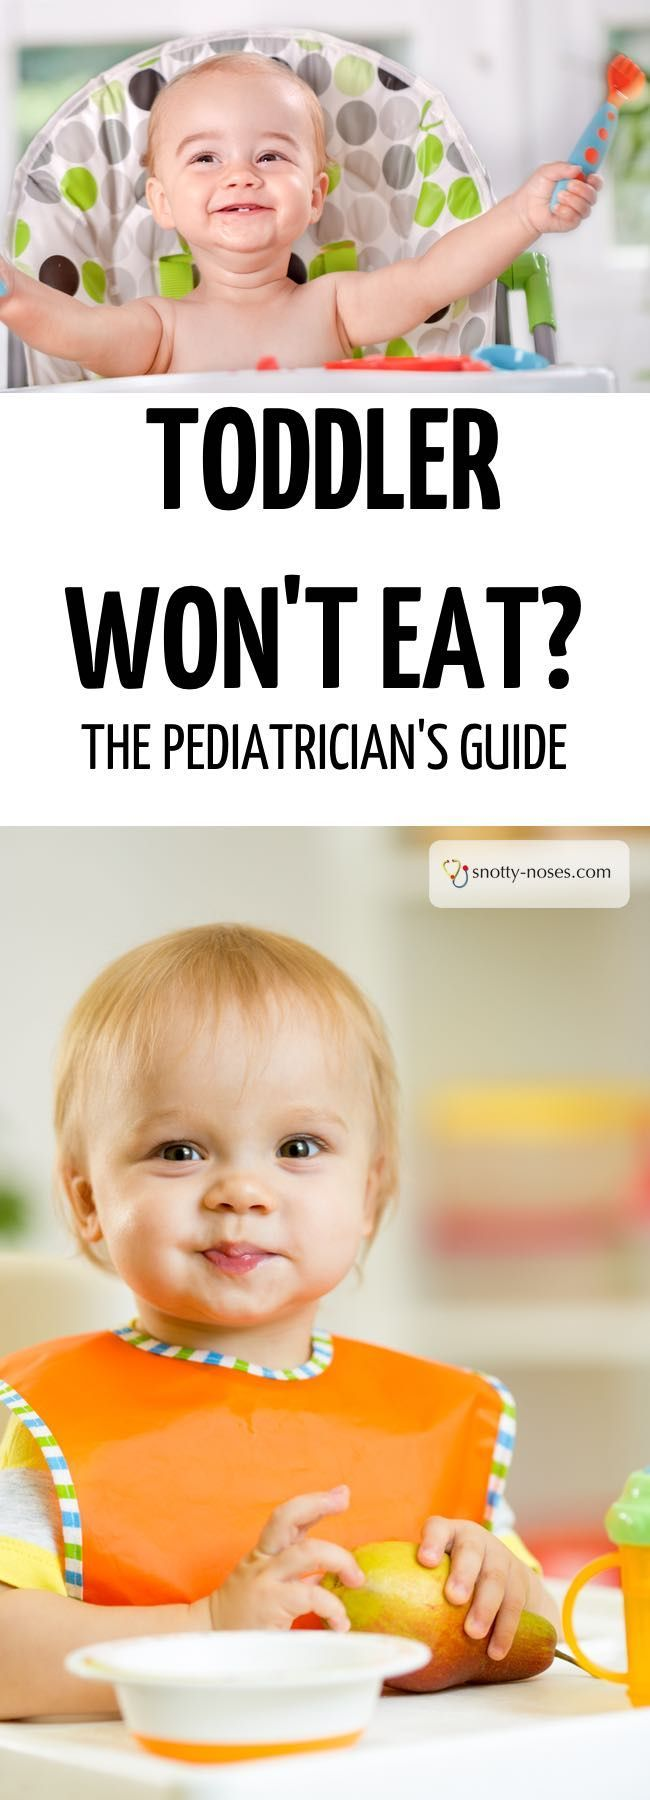 Toddler Won't Eat? The Pediatrician's Ultimate Guide.